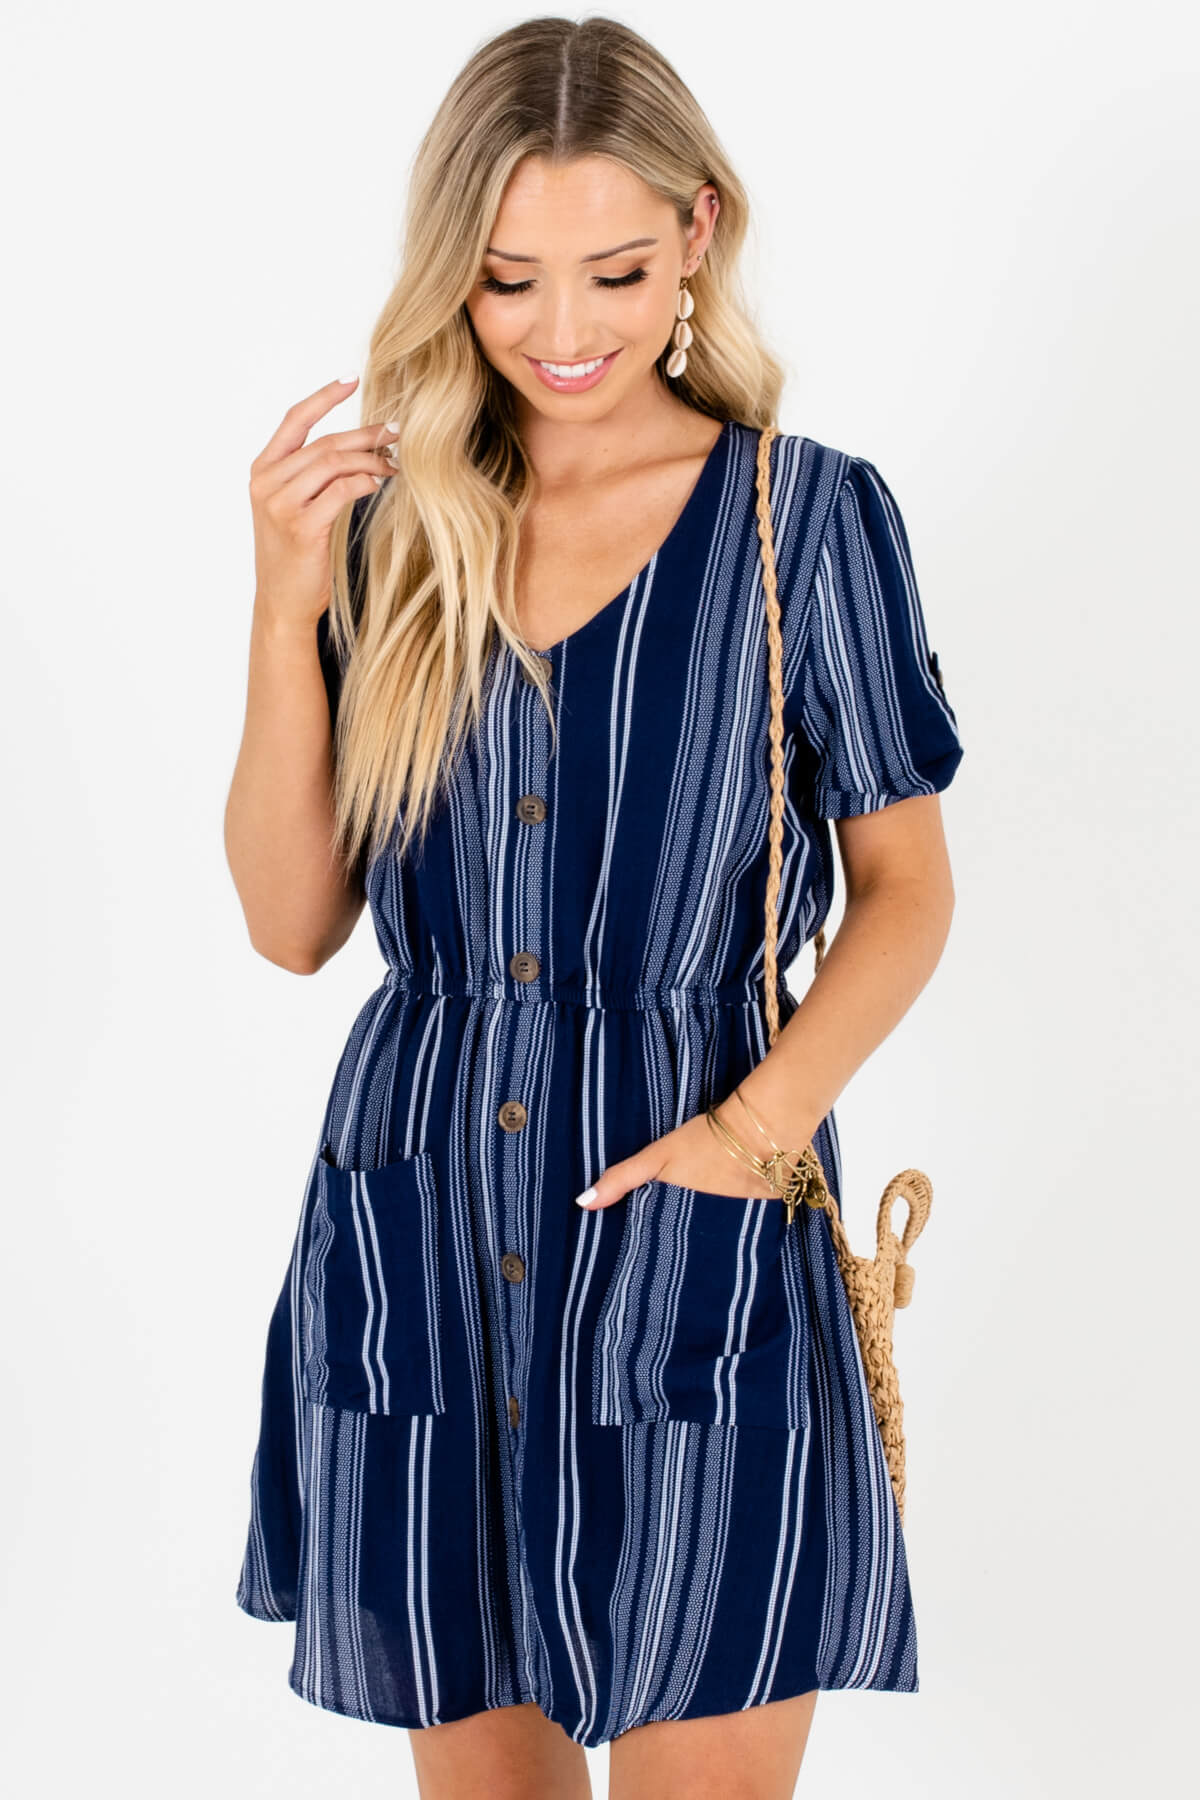 Navy White Striped Decorative Button Pocket Mini Dresses for Women